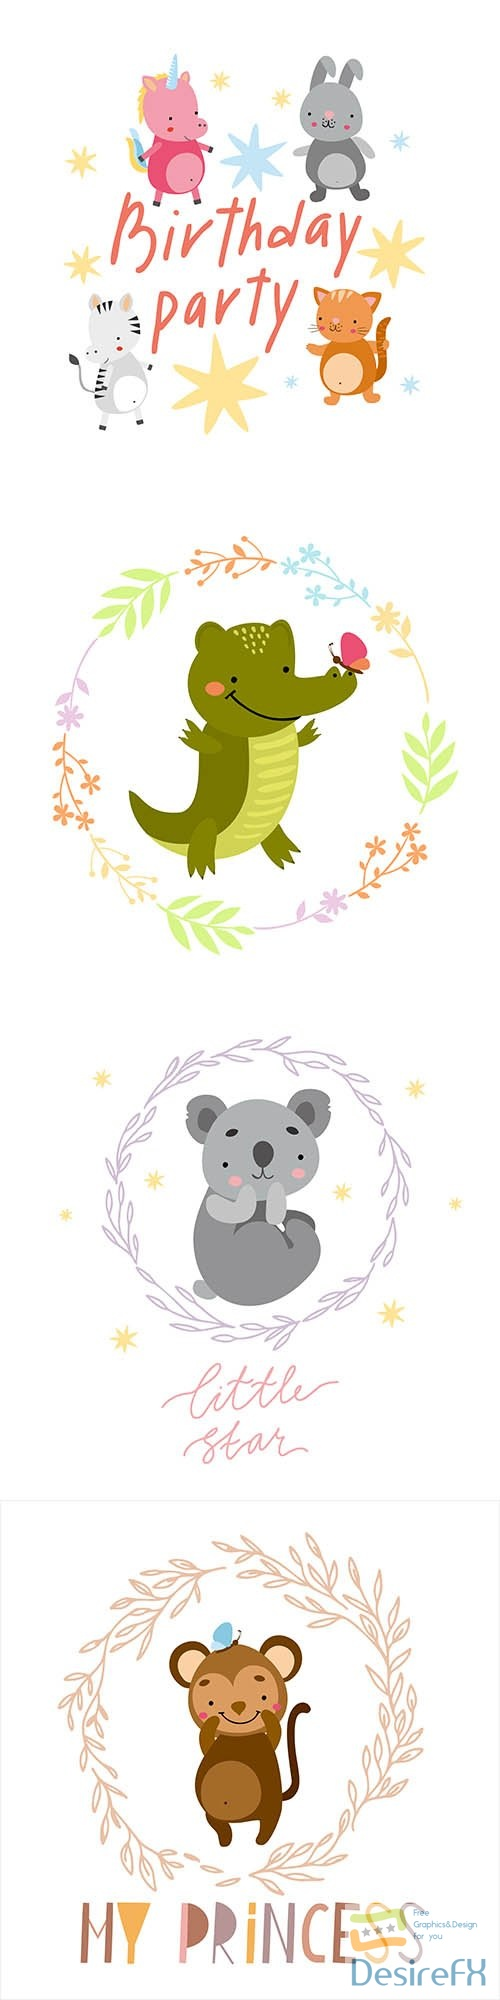 Birthday party illustrations with animals